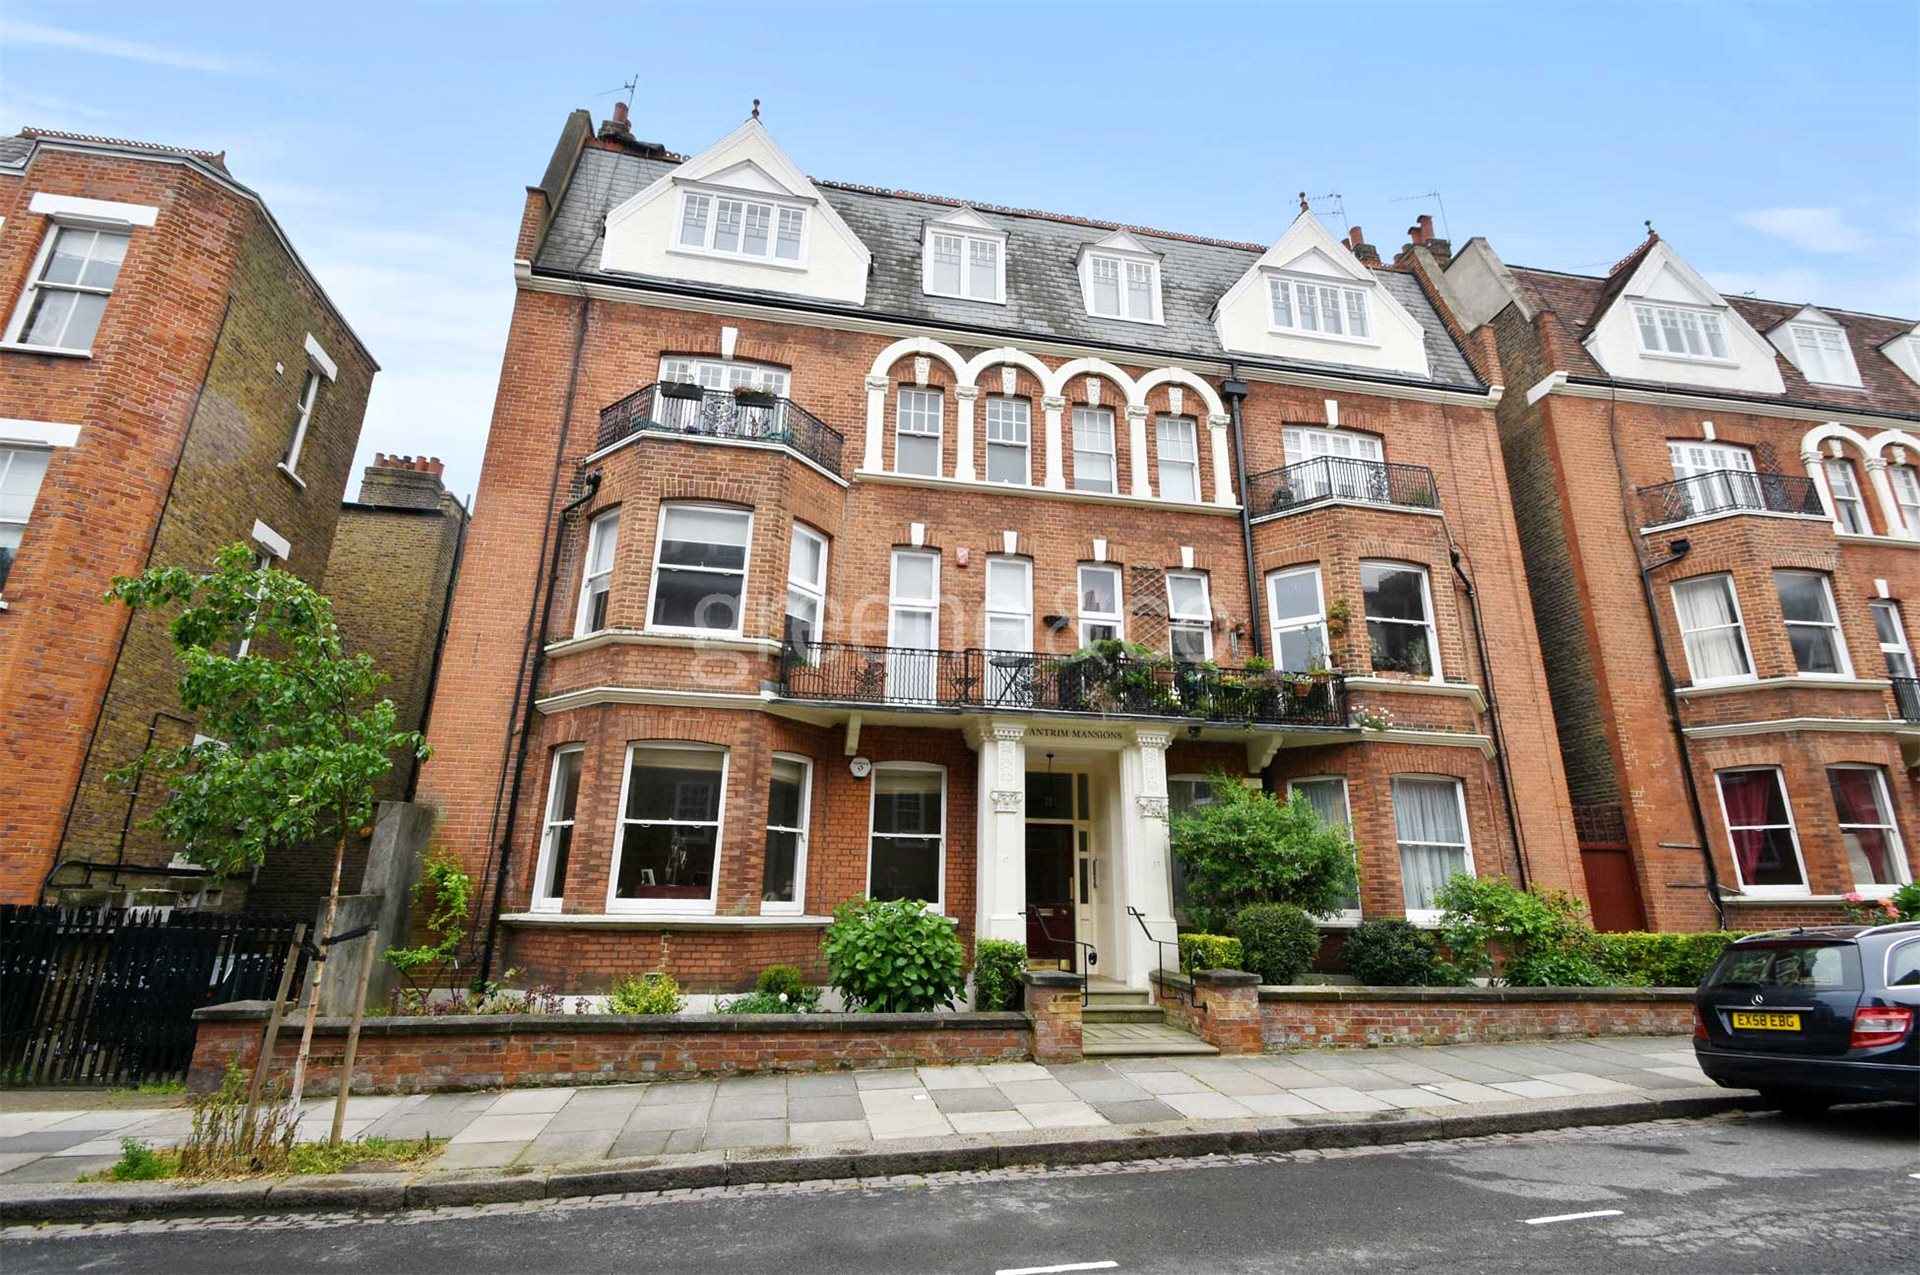 2 bedroom flat for sale in antrim mansions antrim road for Mansion houses for sale in london